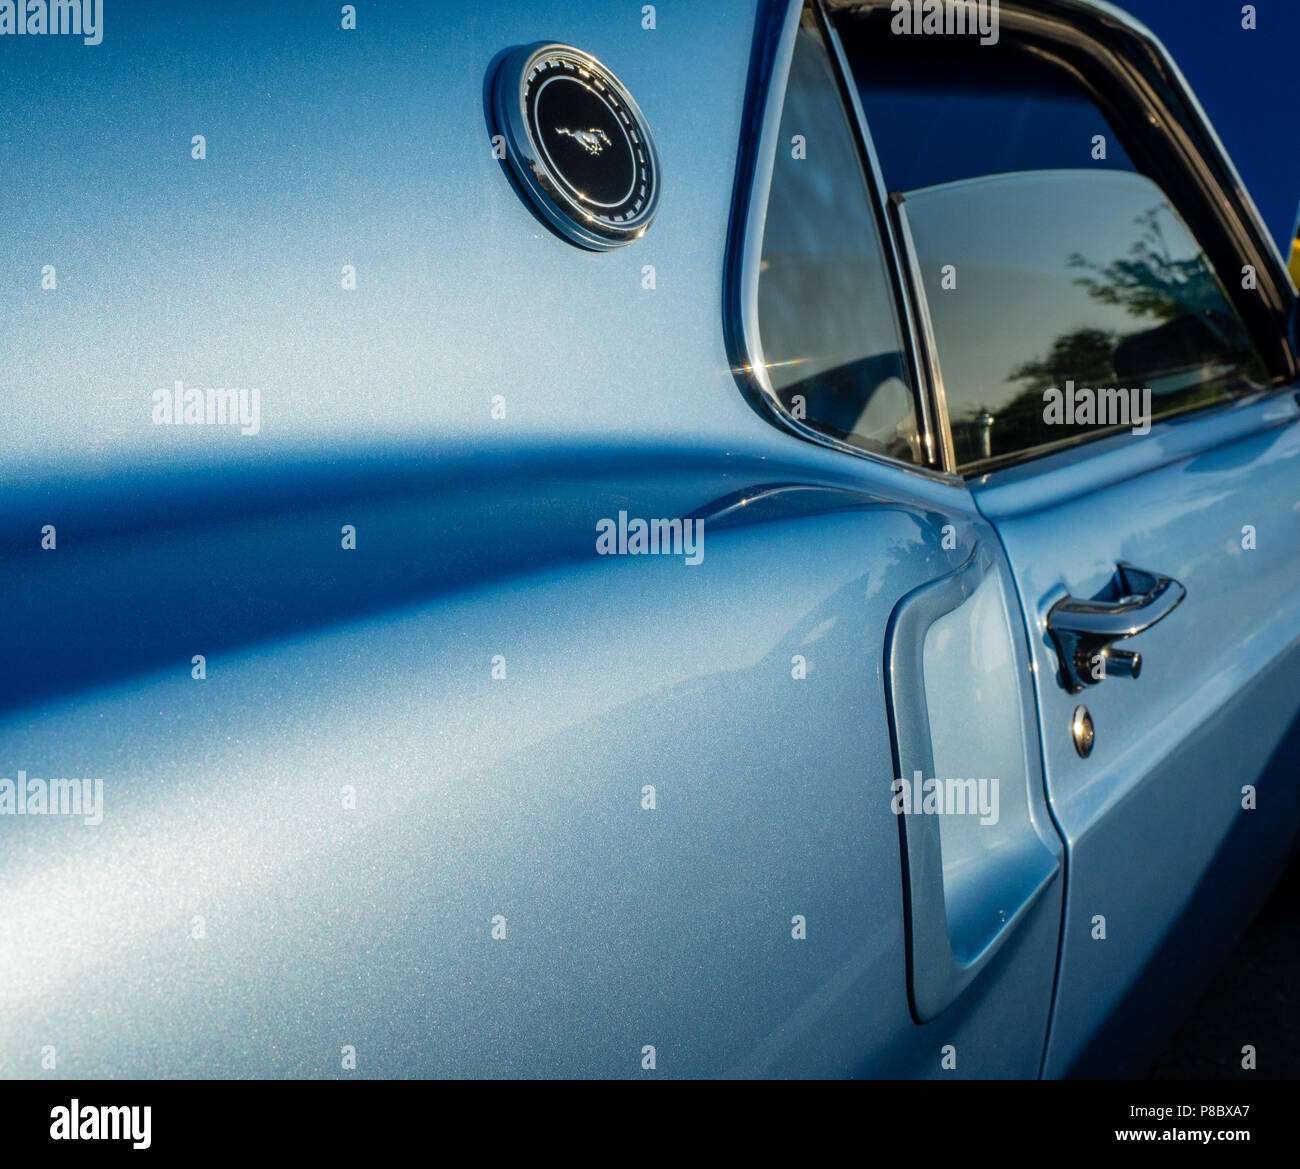 1969 classic Ford Mustang at car show in the Hamptons, New York. - Stock Image